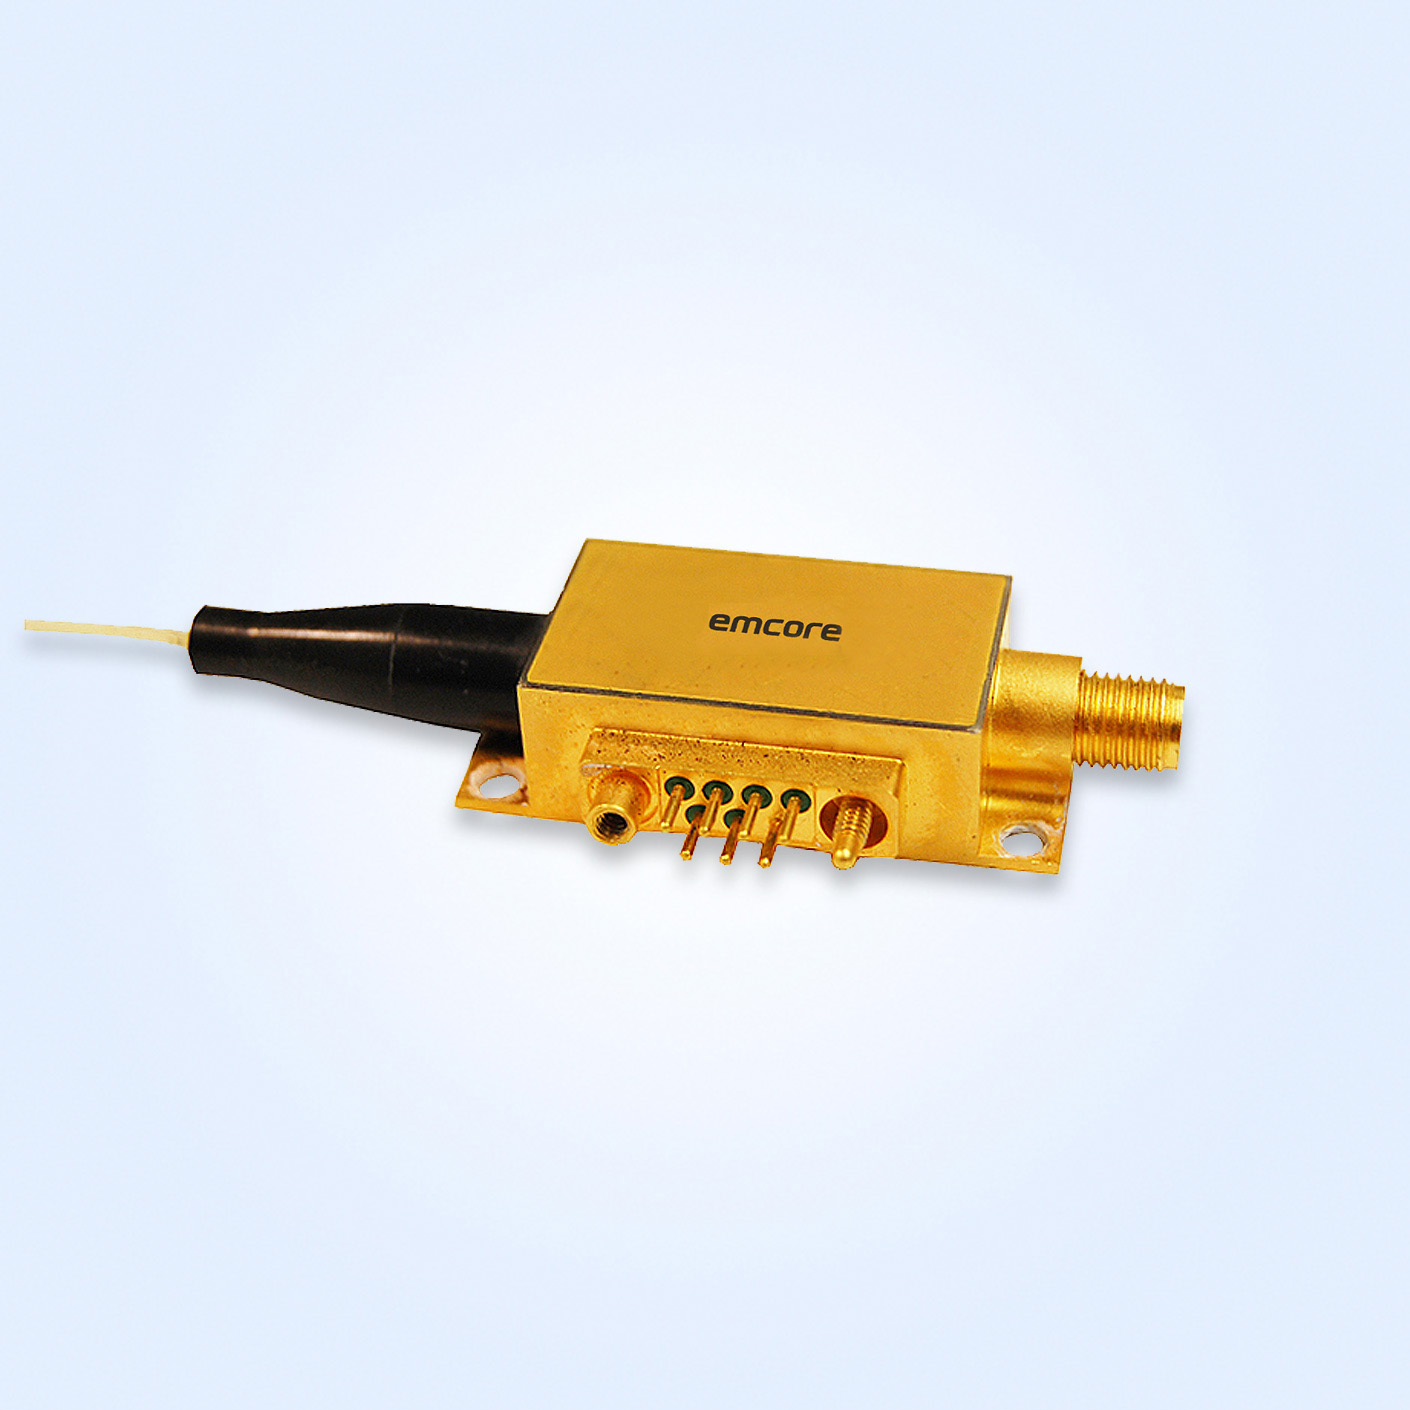 Microwave Lasers & Photodiodes